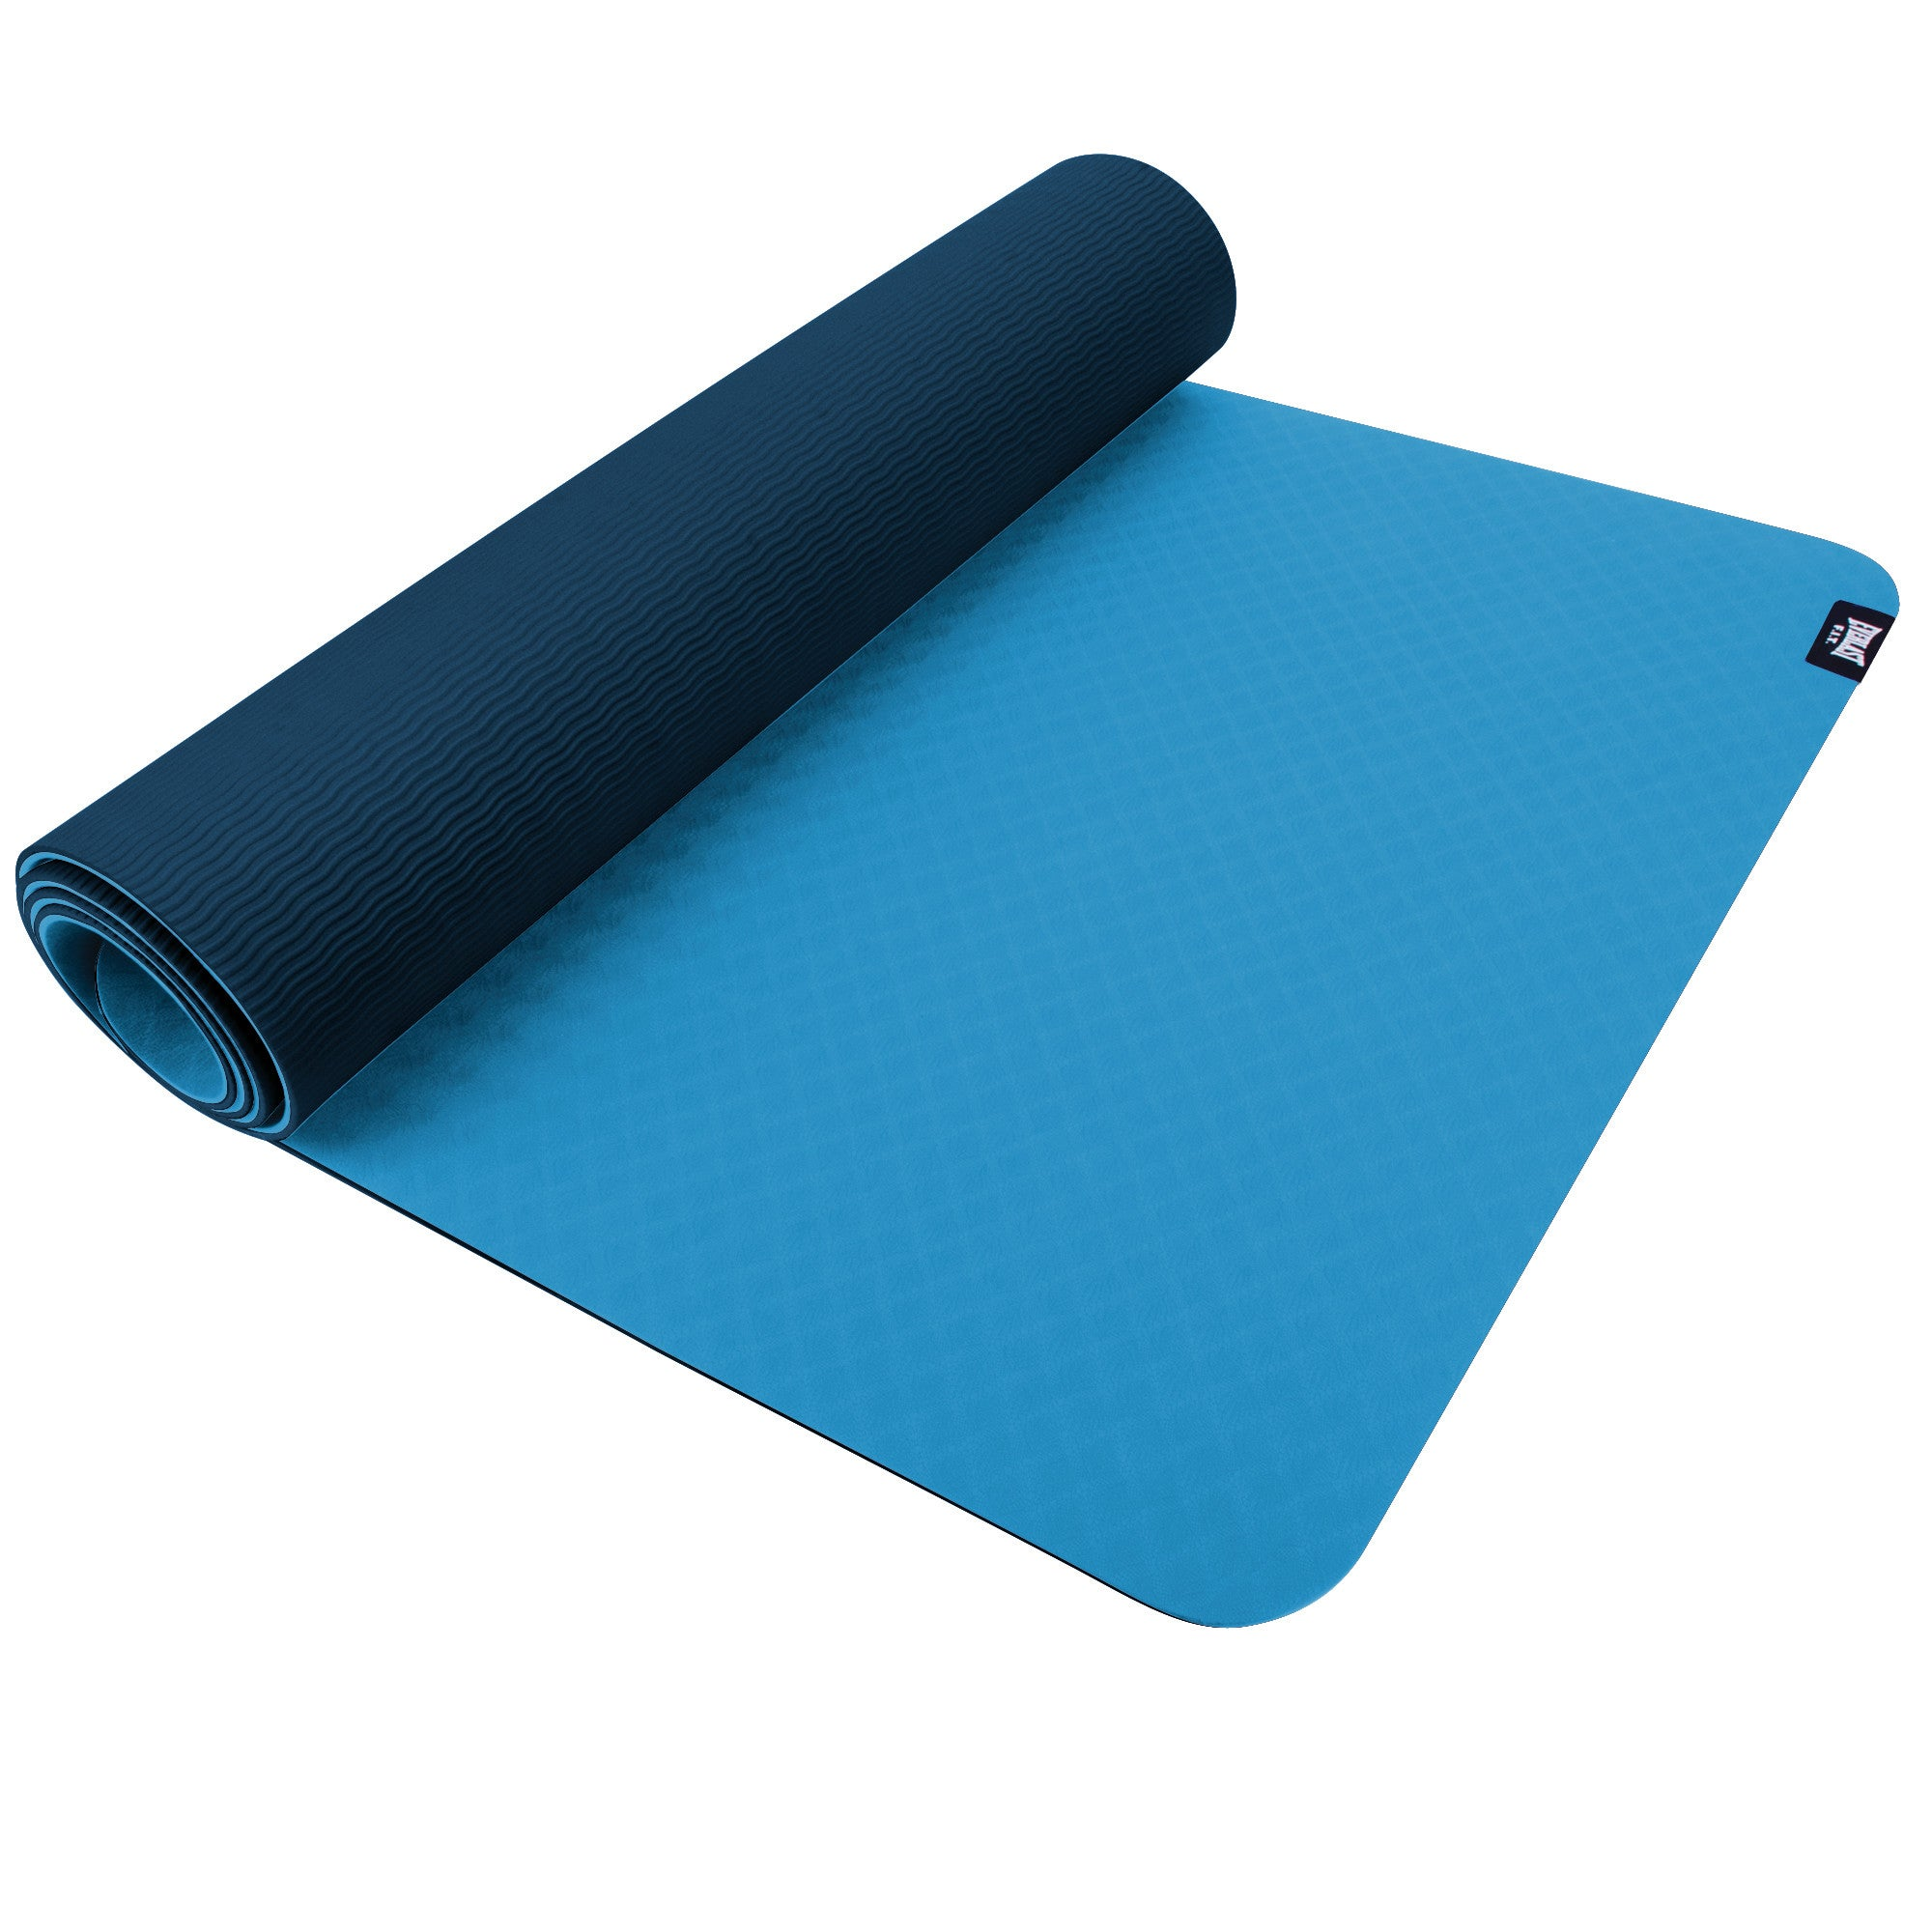 Everlast Premium Yoga Mat by Everlast Canada